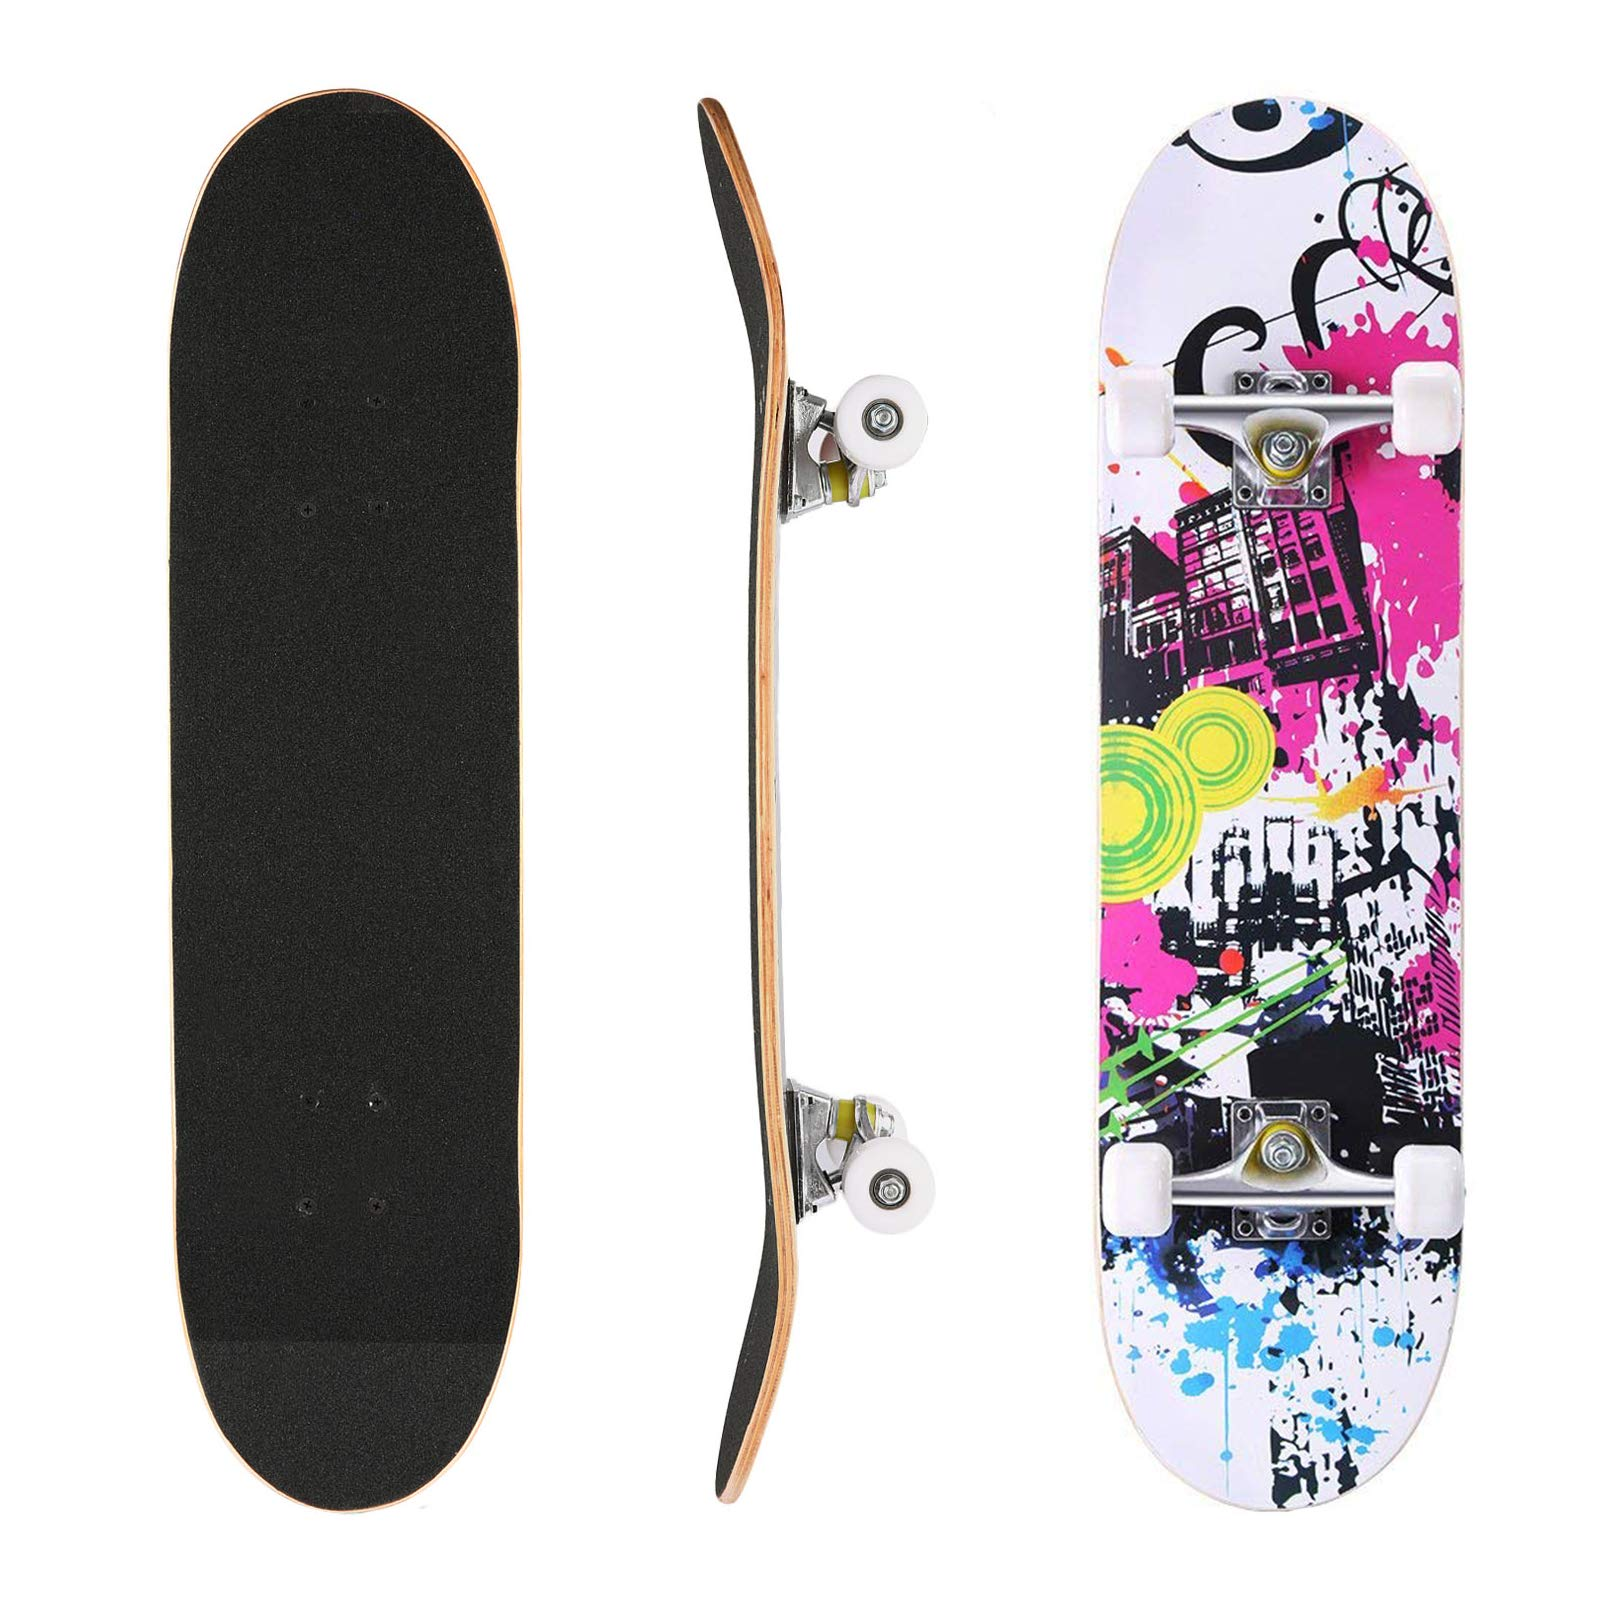 AMHoome Adult Kids Skateboard Complete - Profession Wood Skate Board 31''x 8'', Birthday Gift for Boys Girls 5 Up Years Old